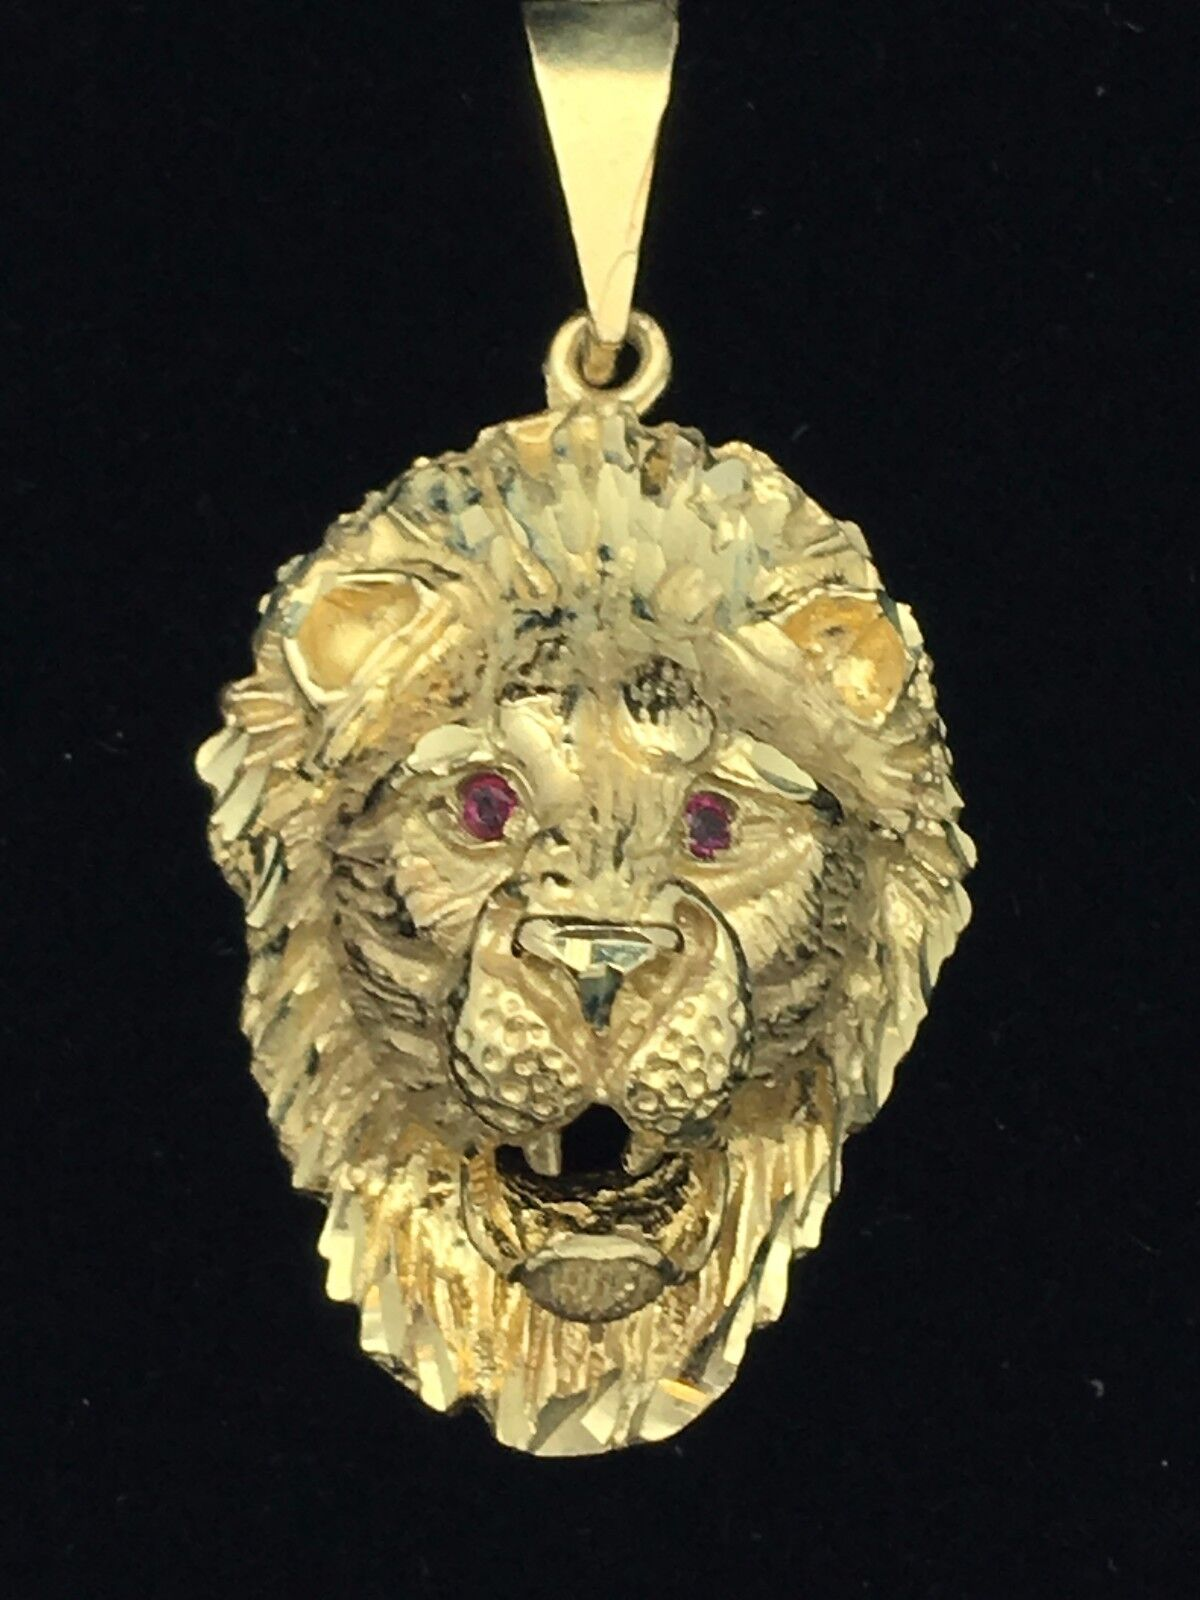 gold new head gift necklace pendant trendy exquisite lion jewelry crown accessories color in steel stainless item from plated jewlery necklaces luxusteel cool